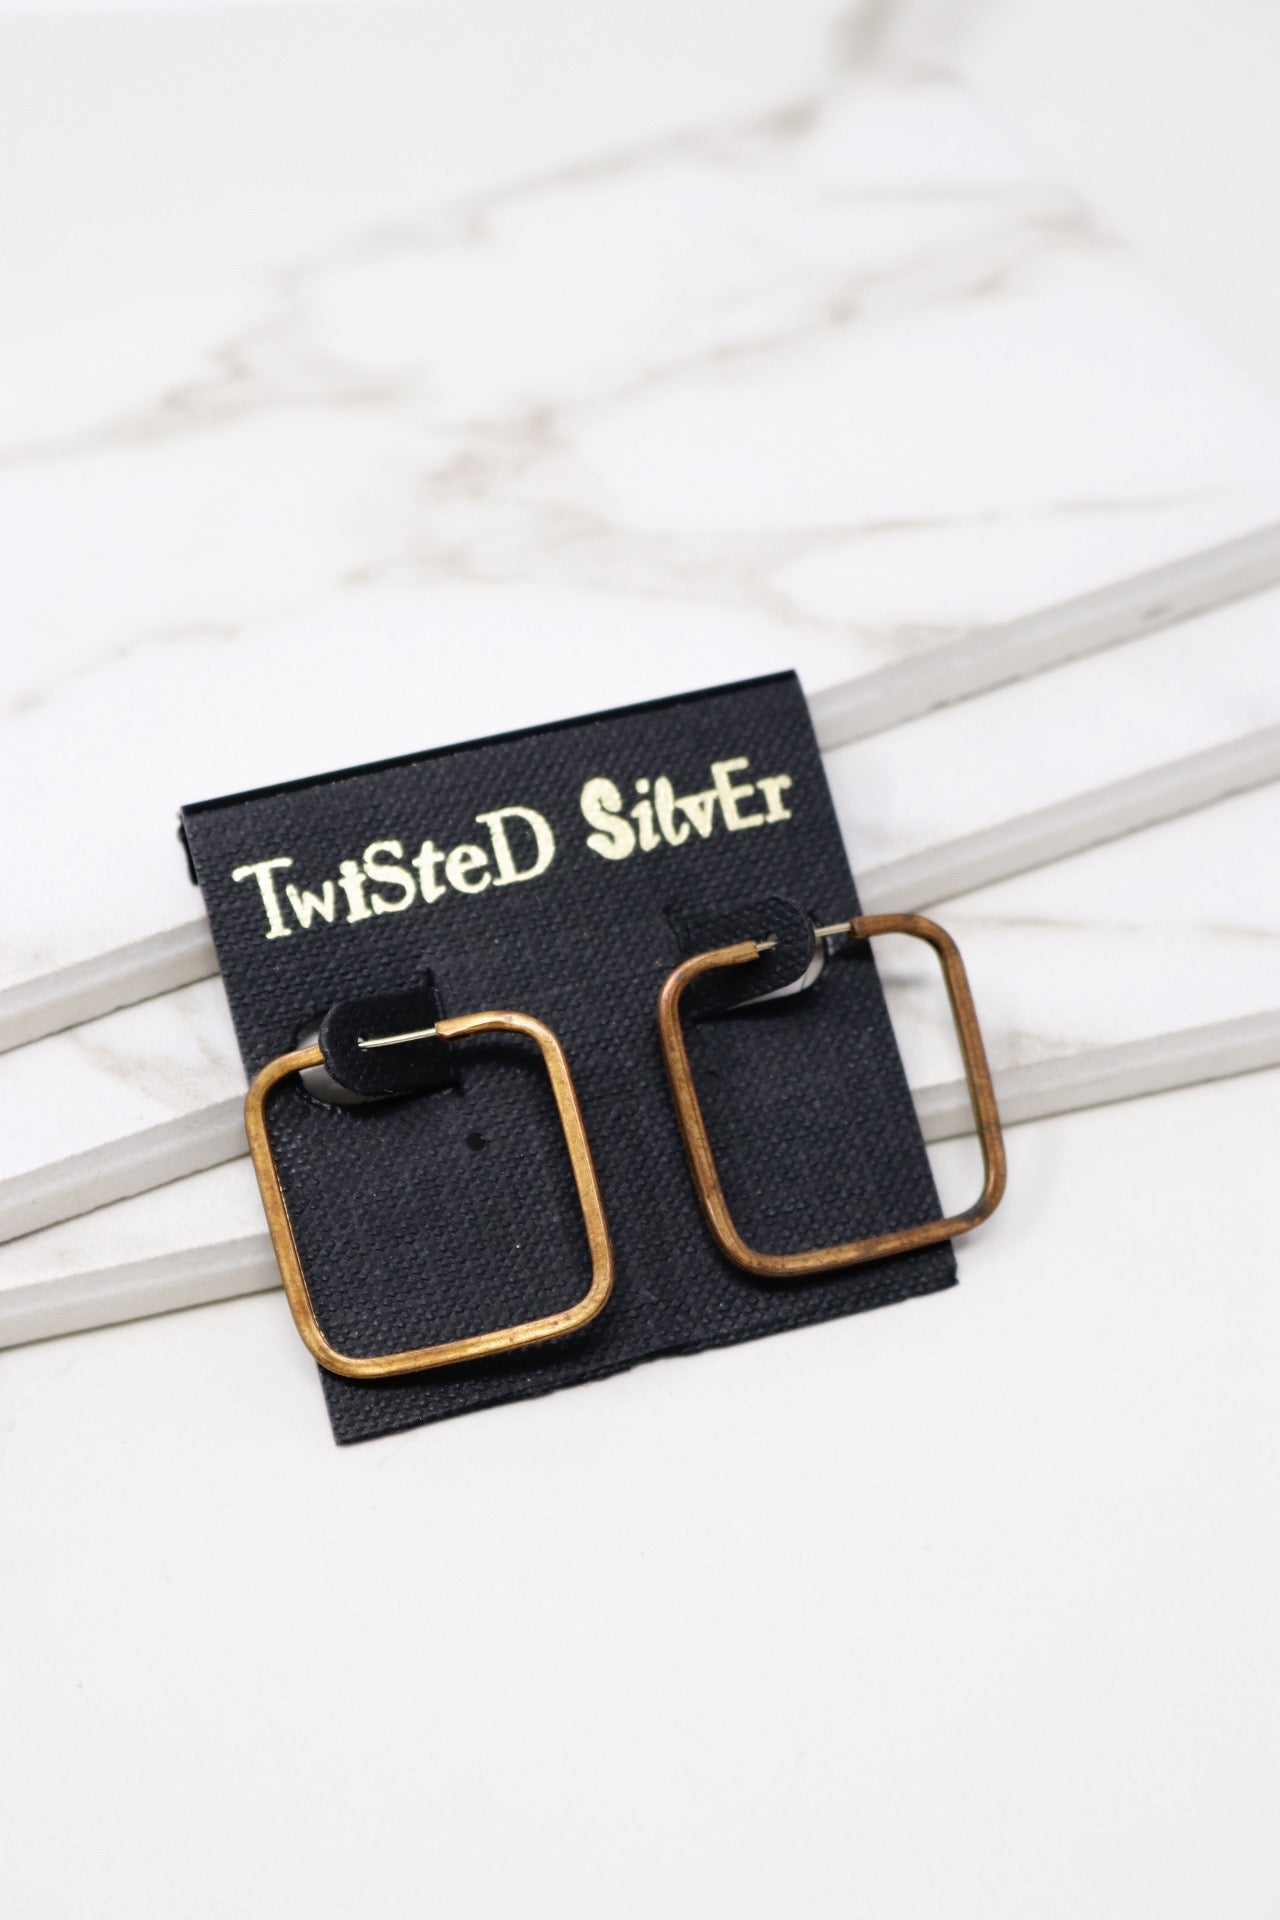 SMART Earrings - Twisted Silver